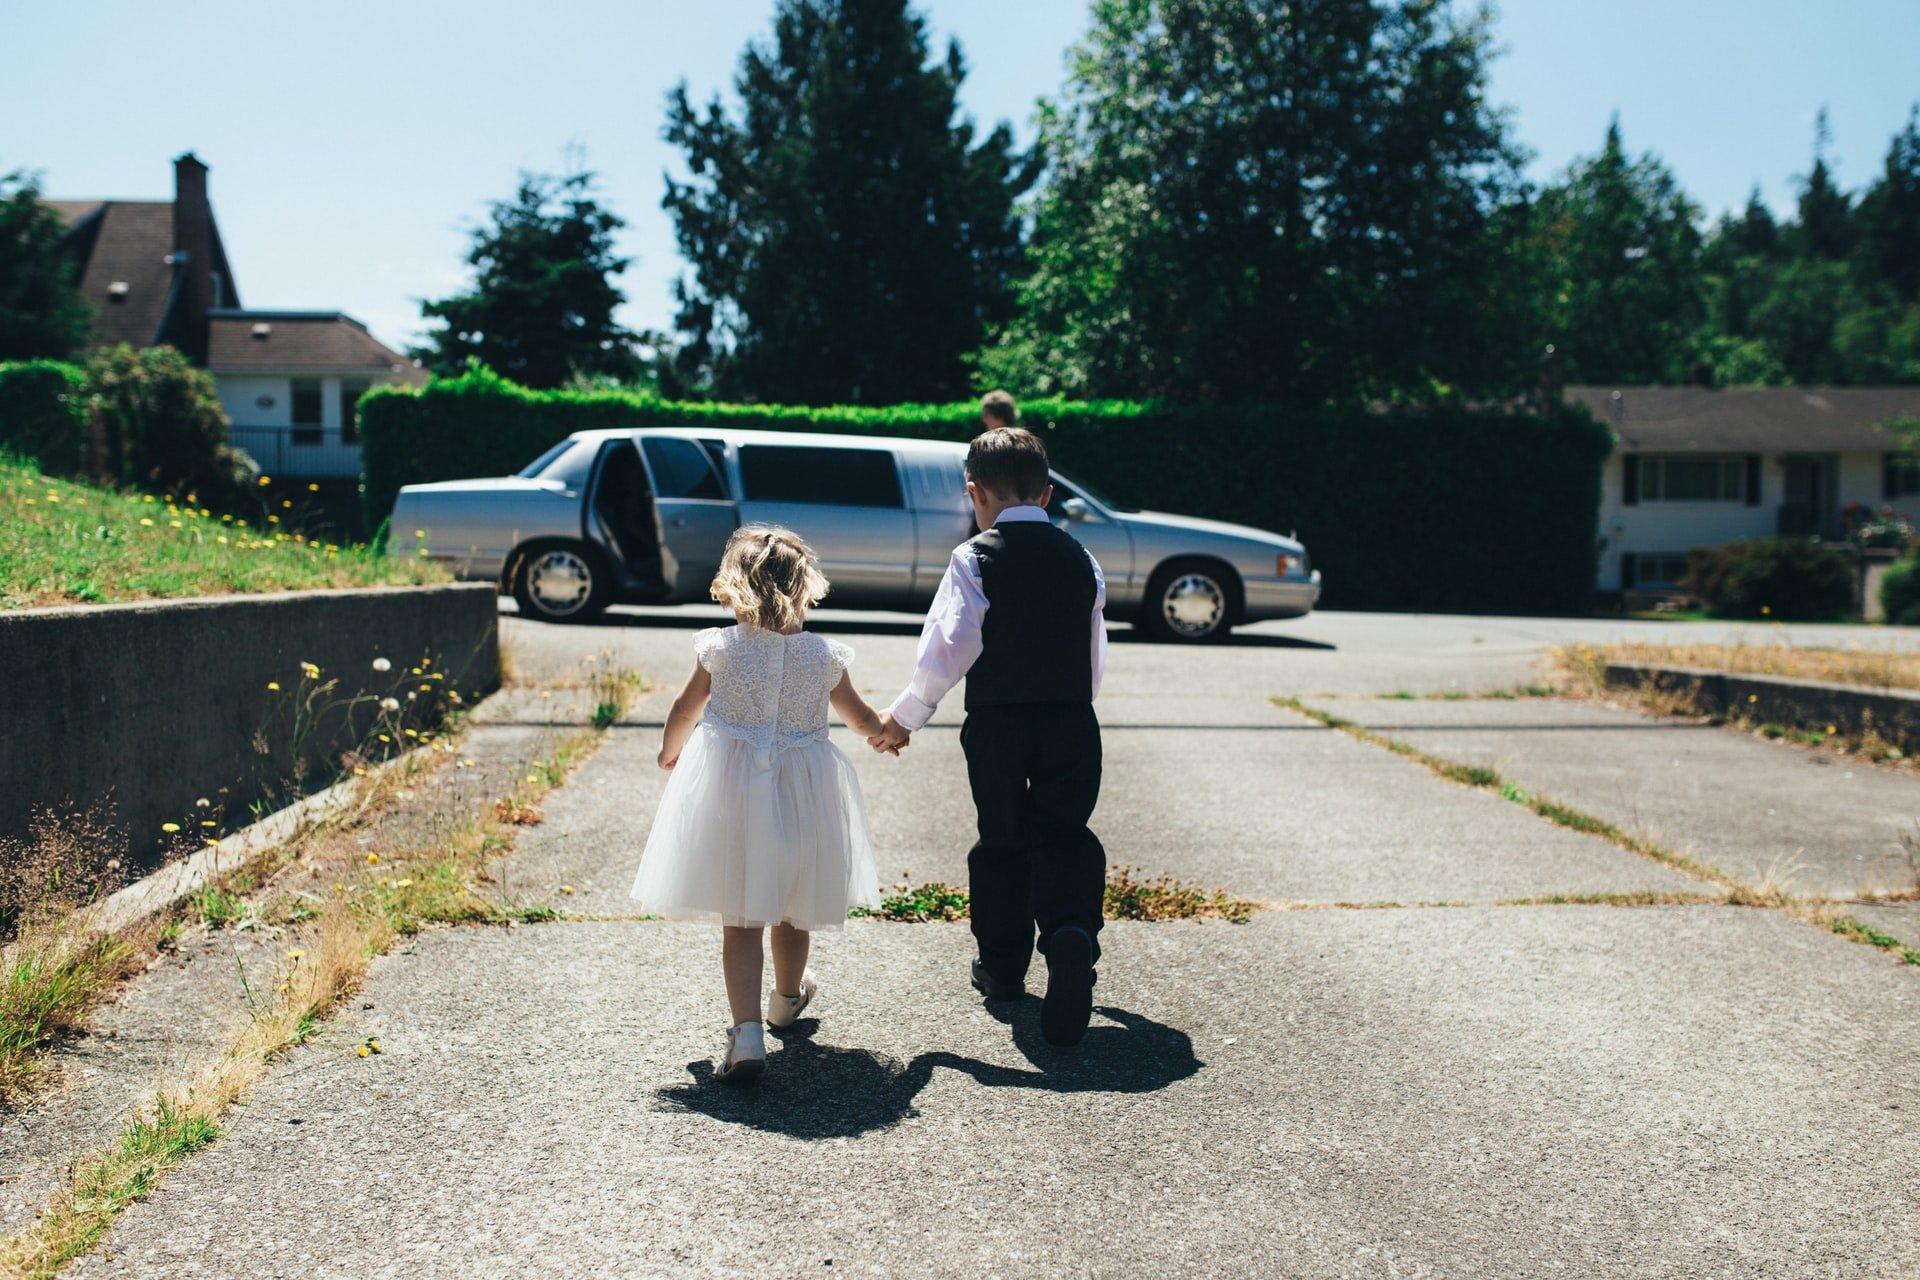 Boy and girl walking on the road   Source: Unsplash